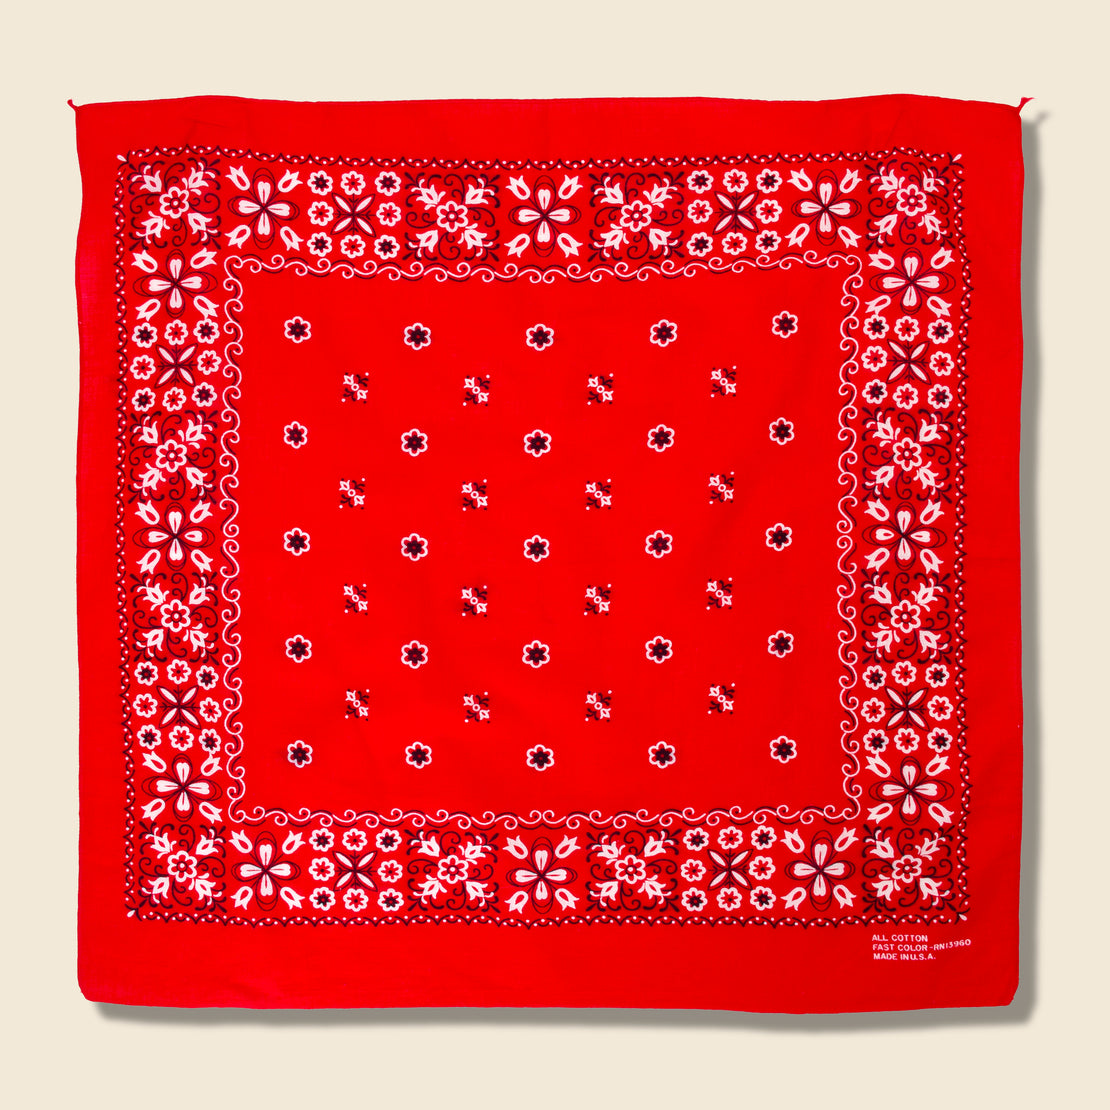 Vintage Fastcolor Tuside Cotton Floral Bandana - Red/White/Black